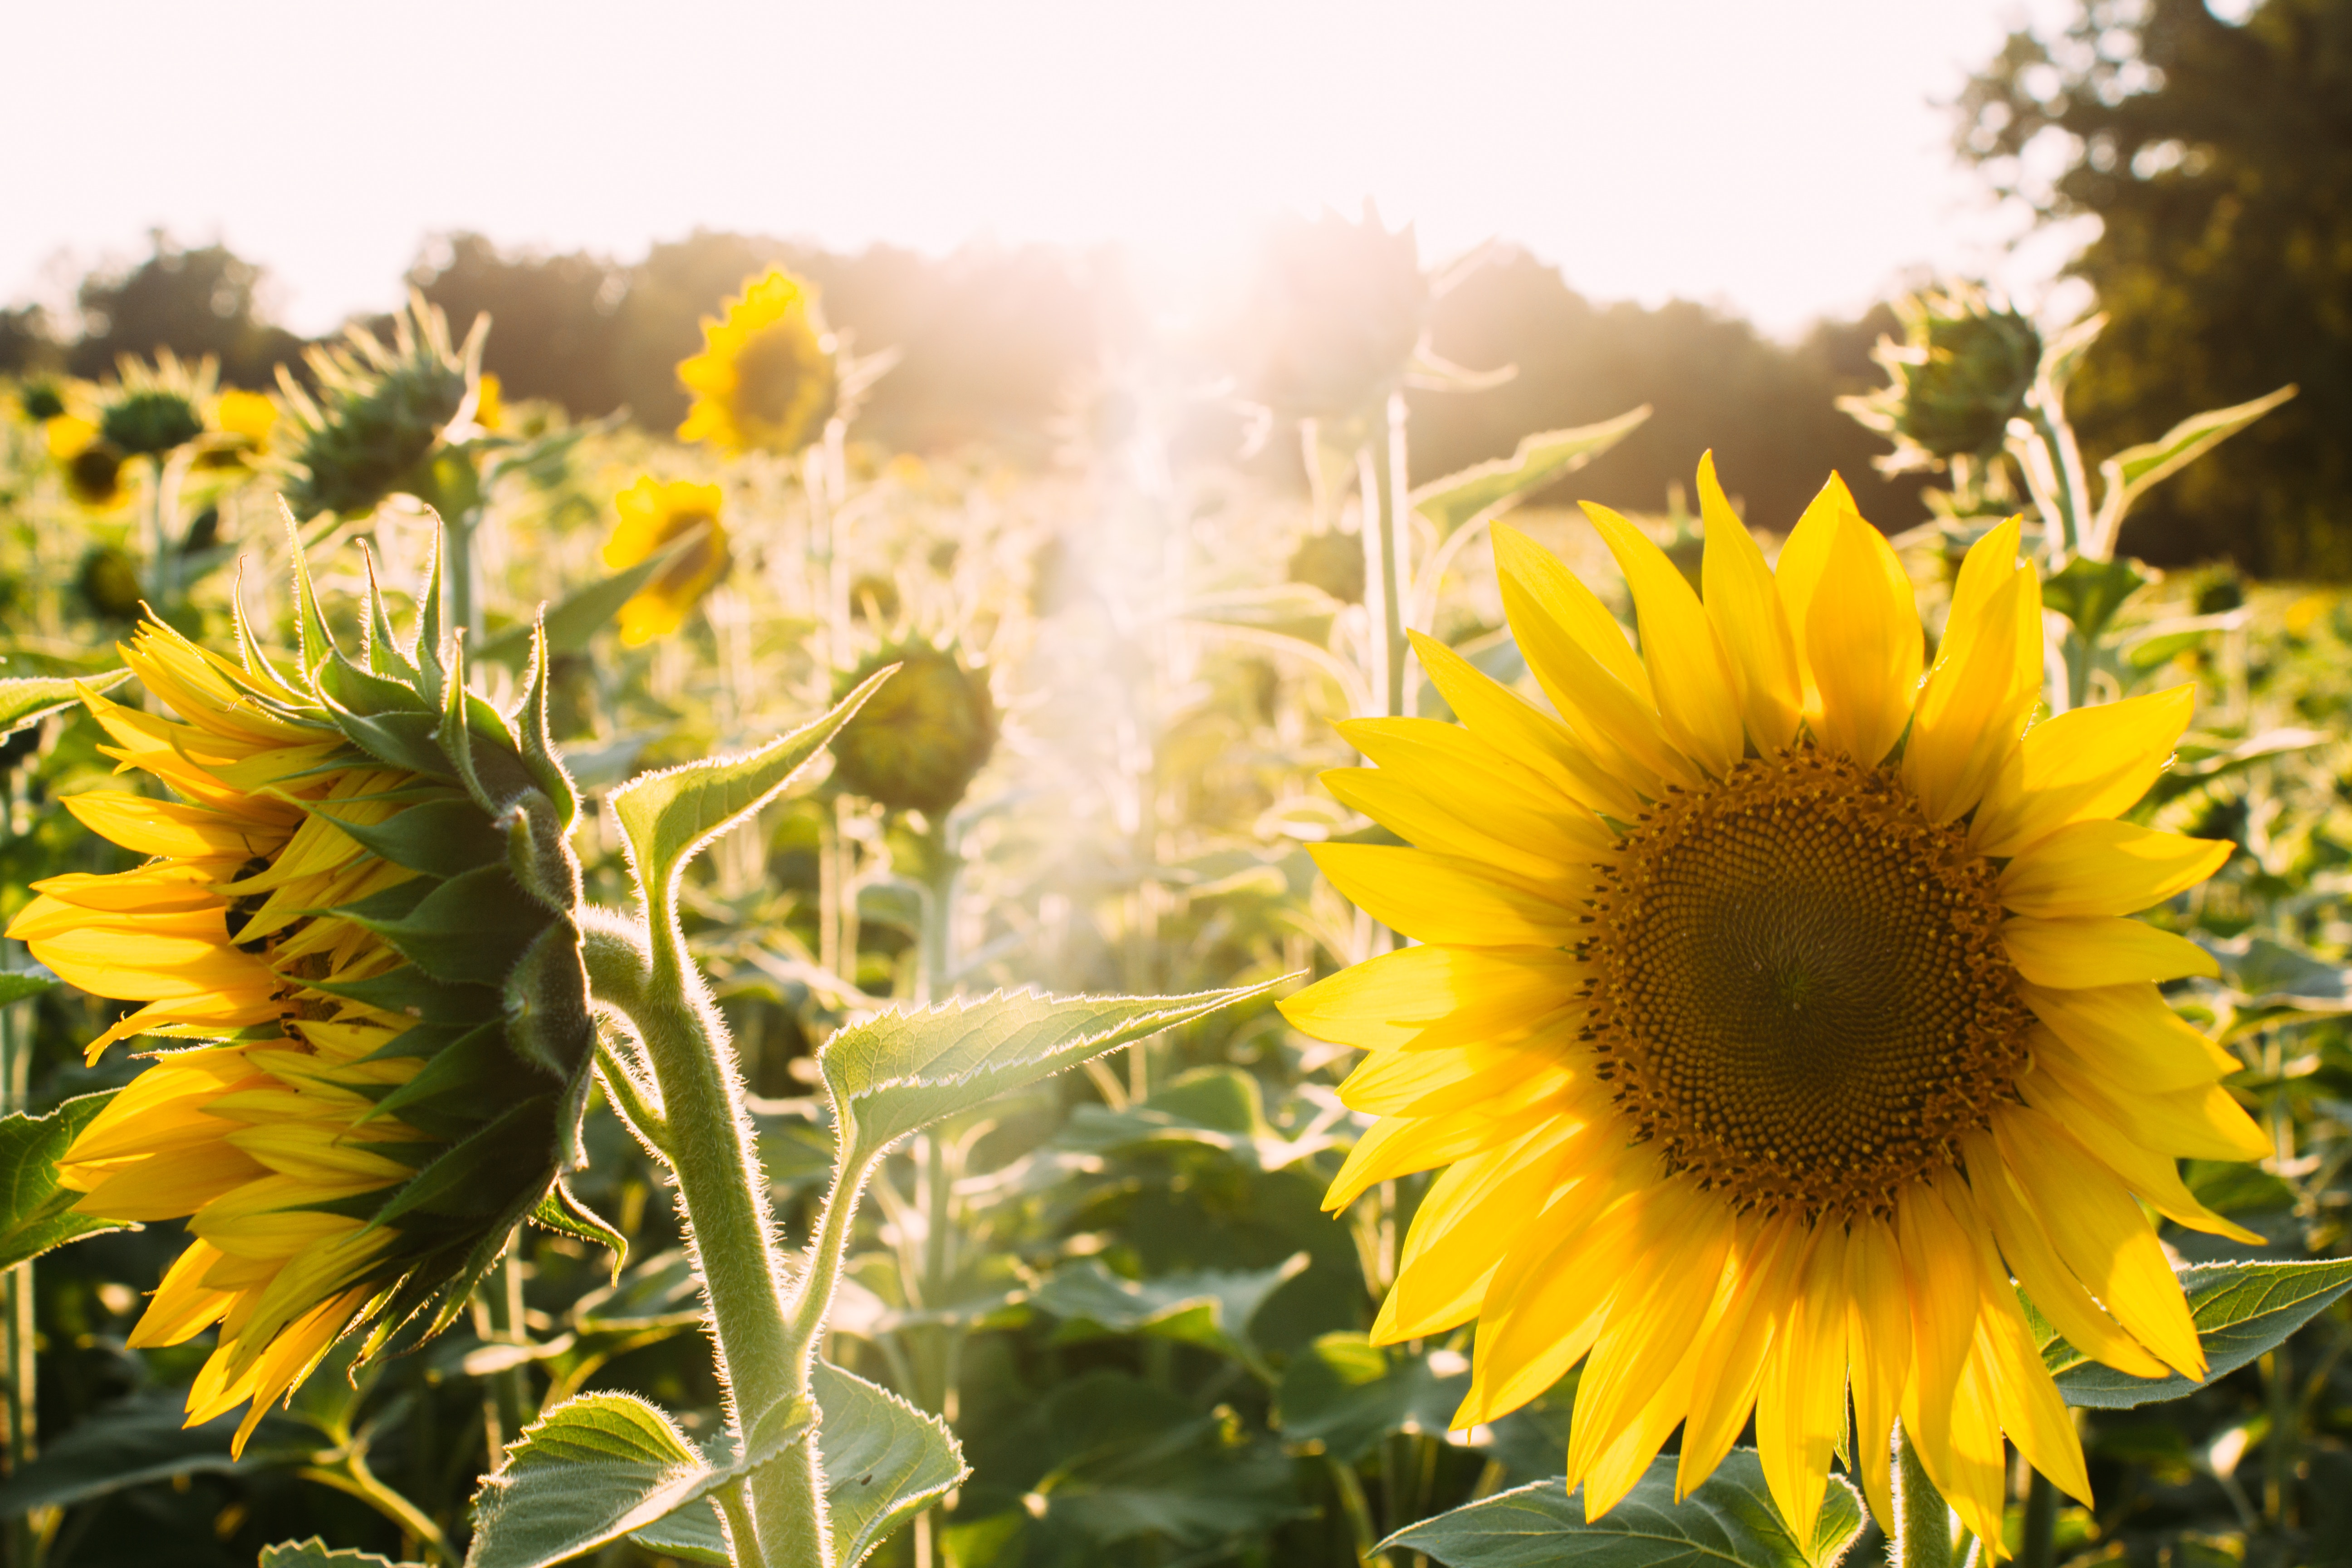 Lecithin: What Is It and How Does Sunflower Lecithin Help Your Body Stay Healthy